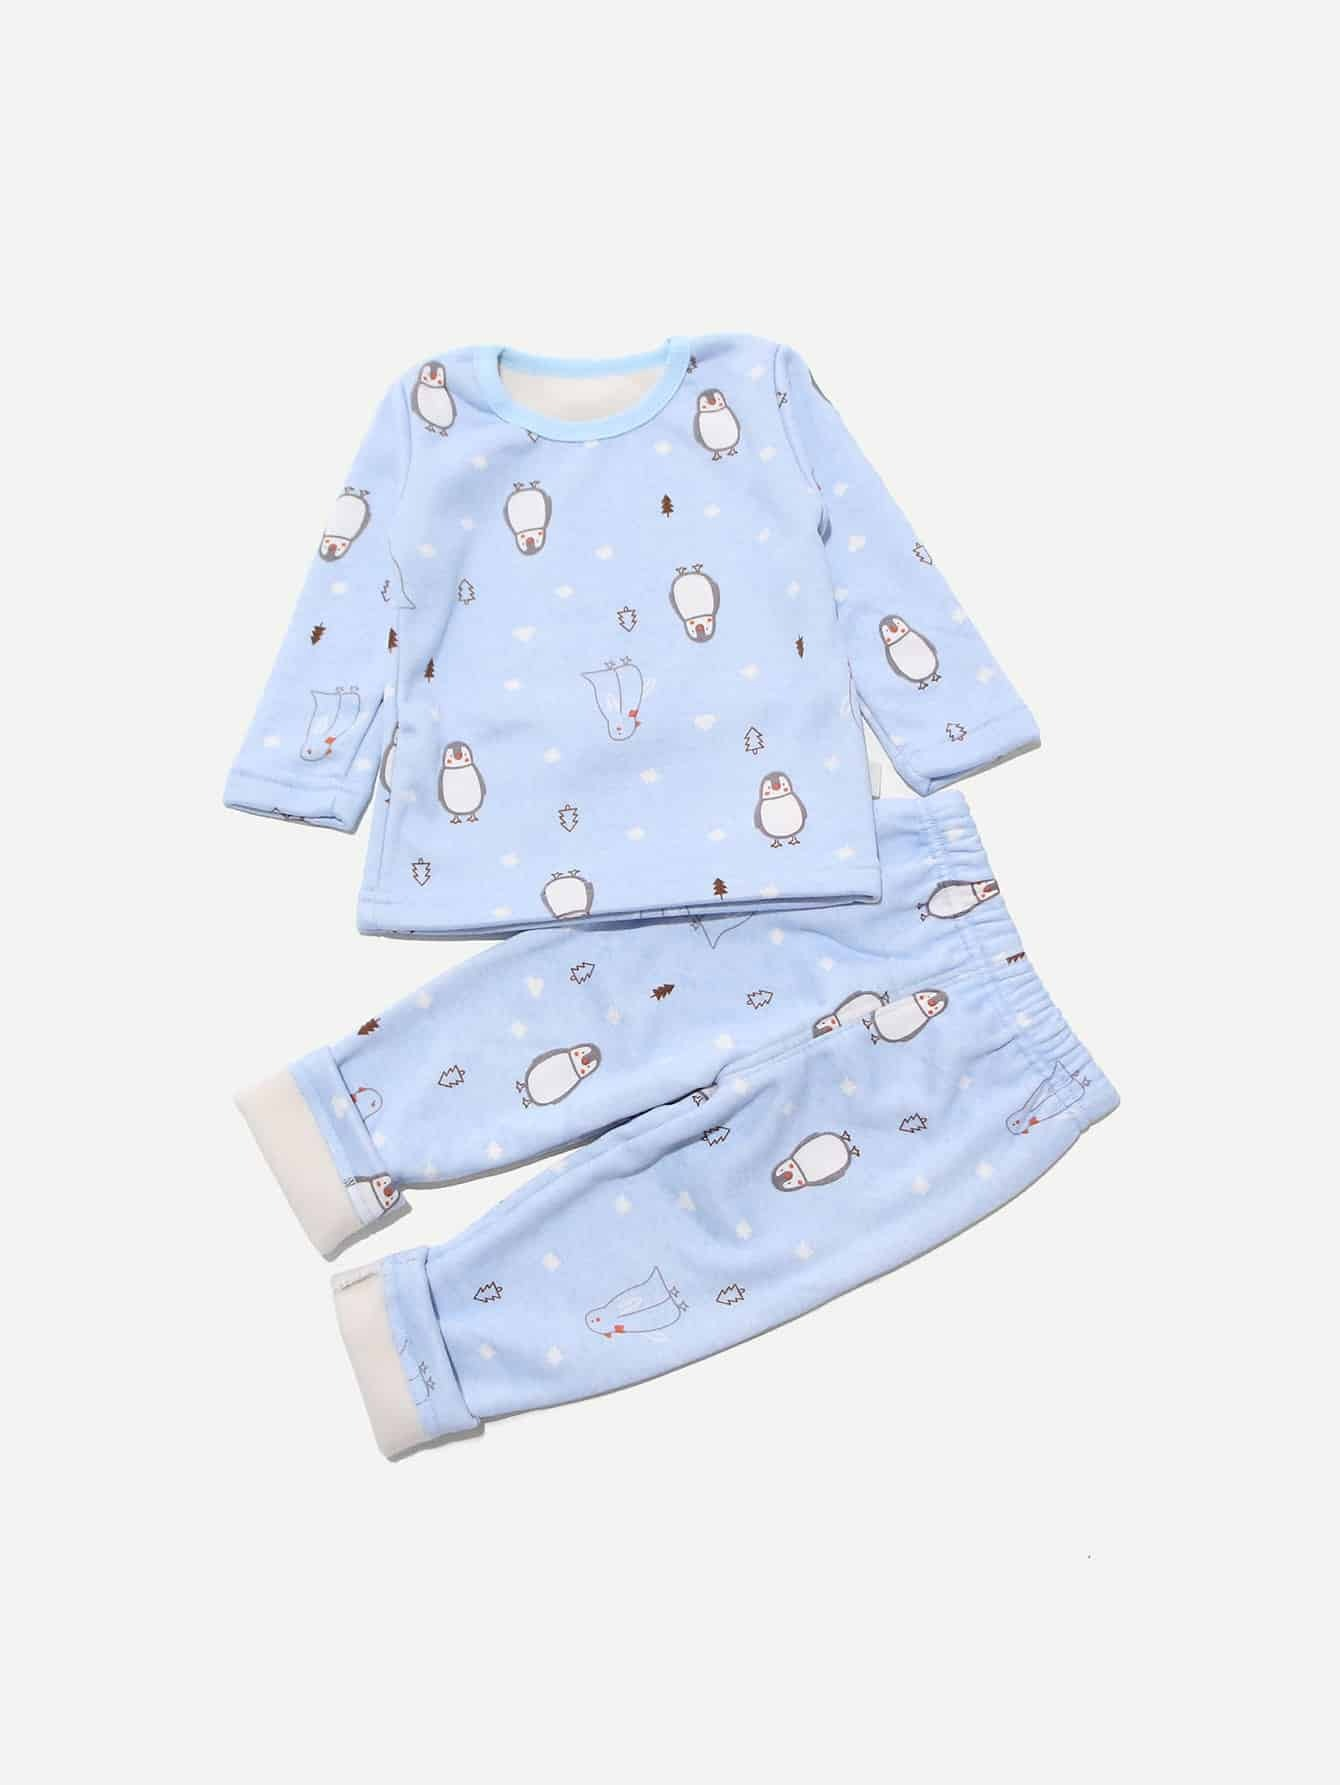 Boys Penguin Print Top With Pants Boys Penguin Print Top With Pants